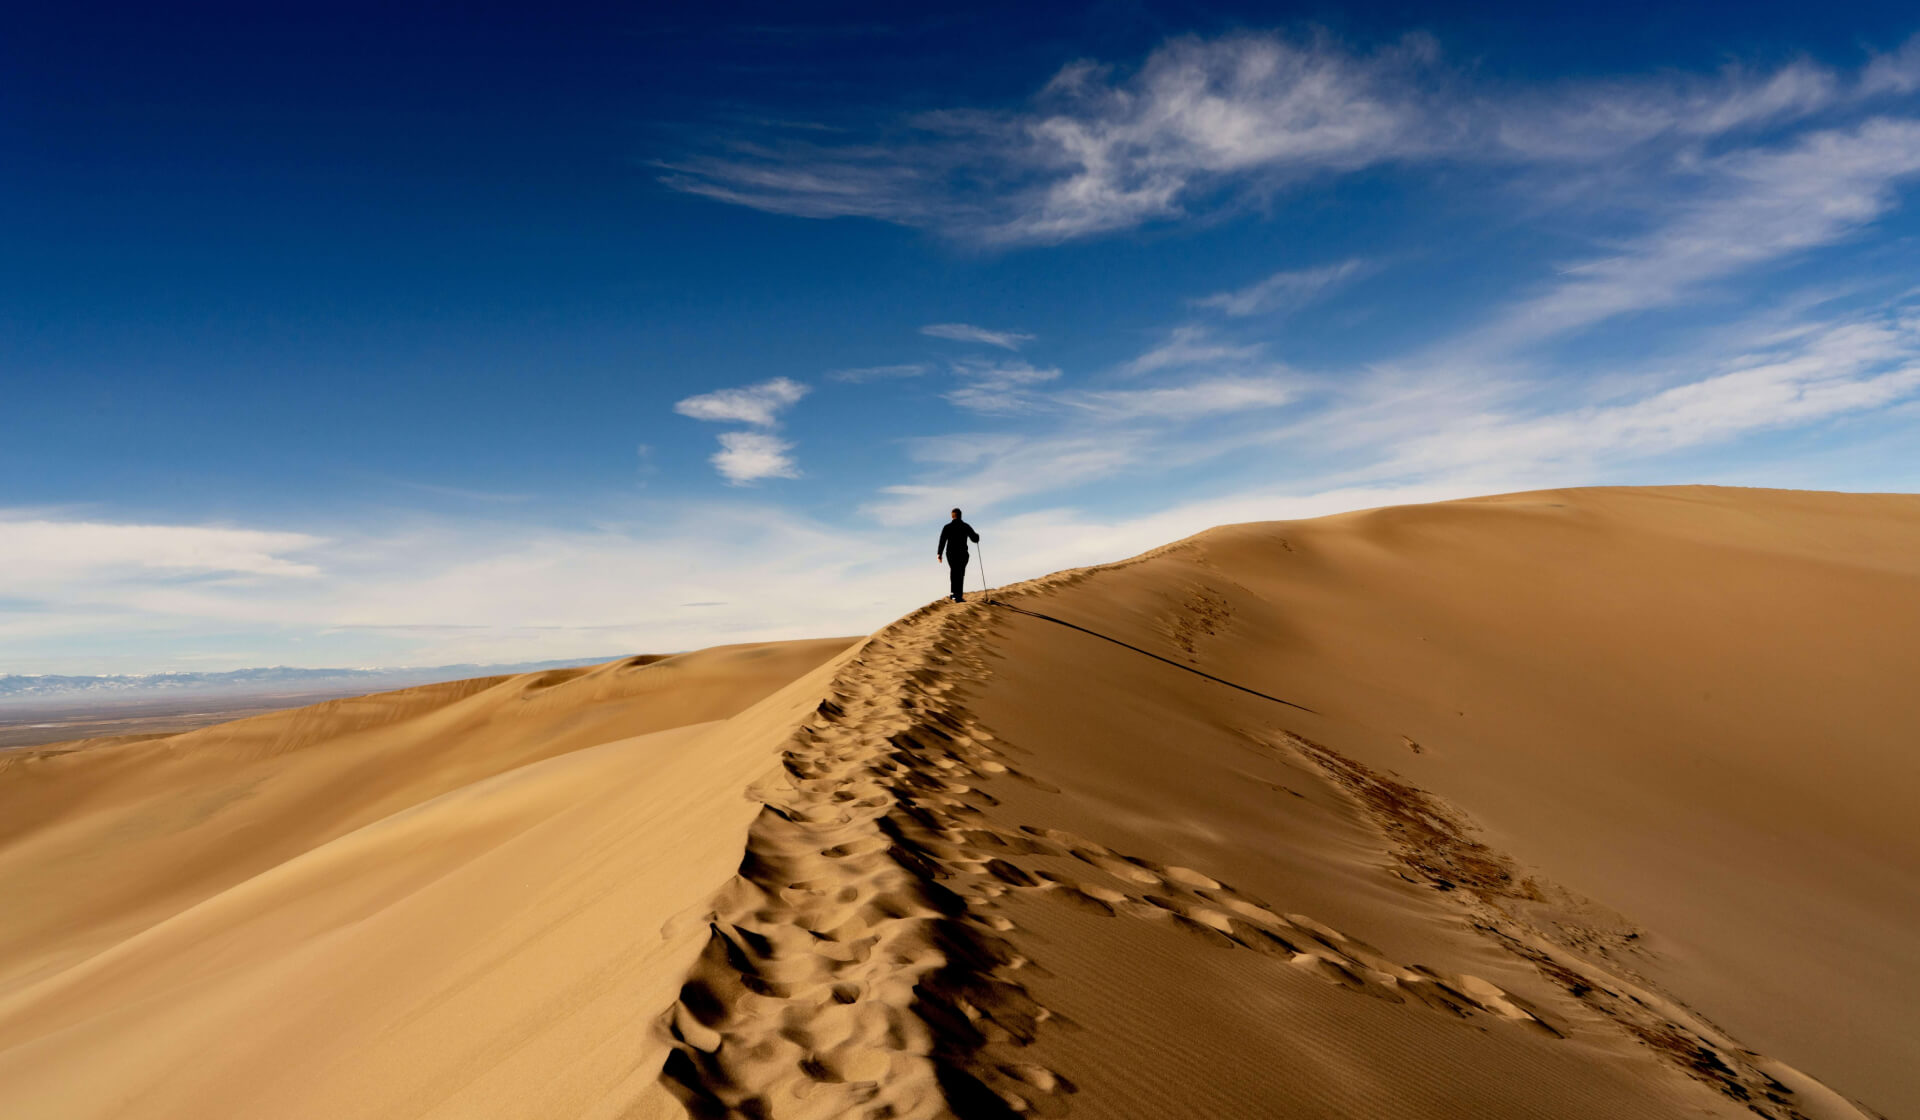 Massive sand dune with footprints and a man hiking across its peak